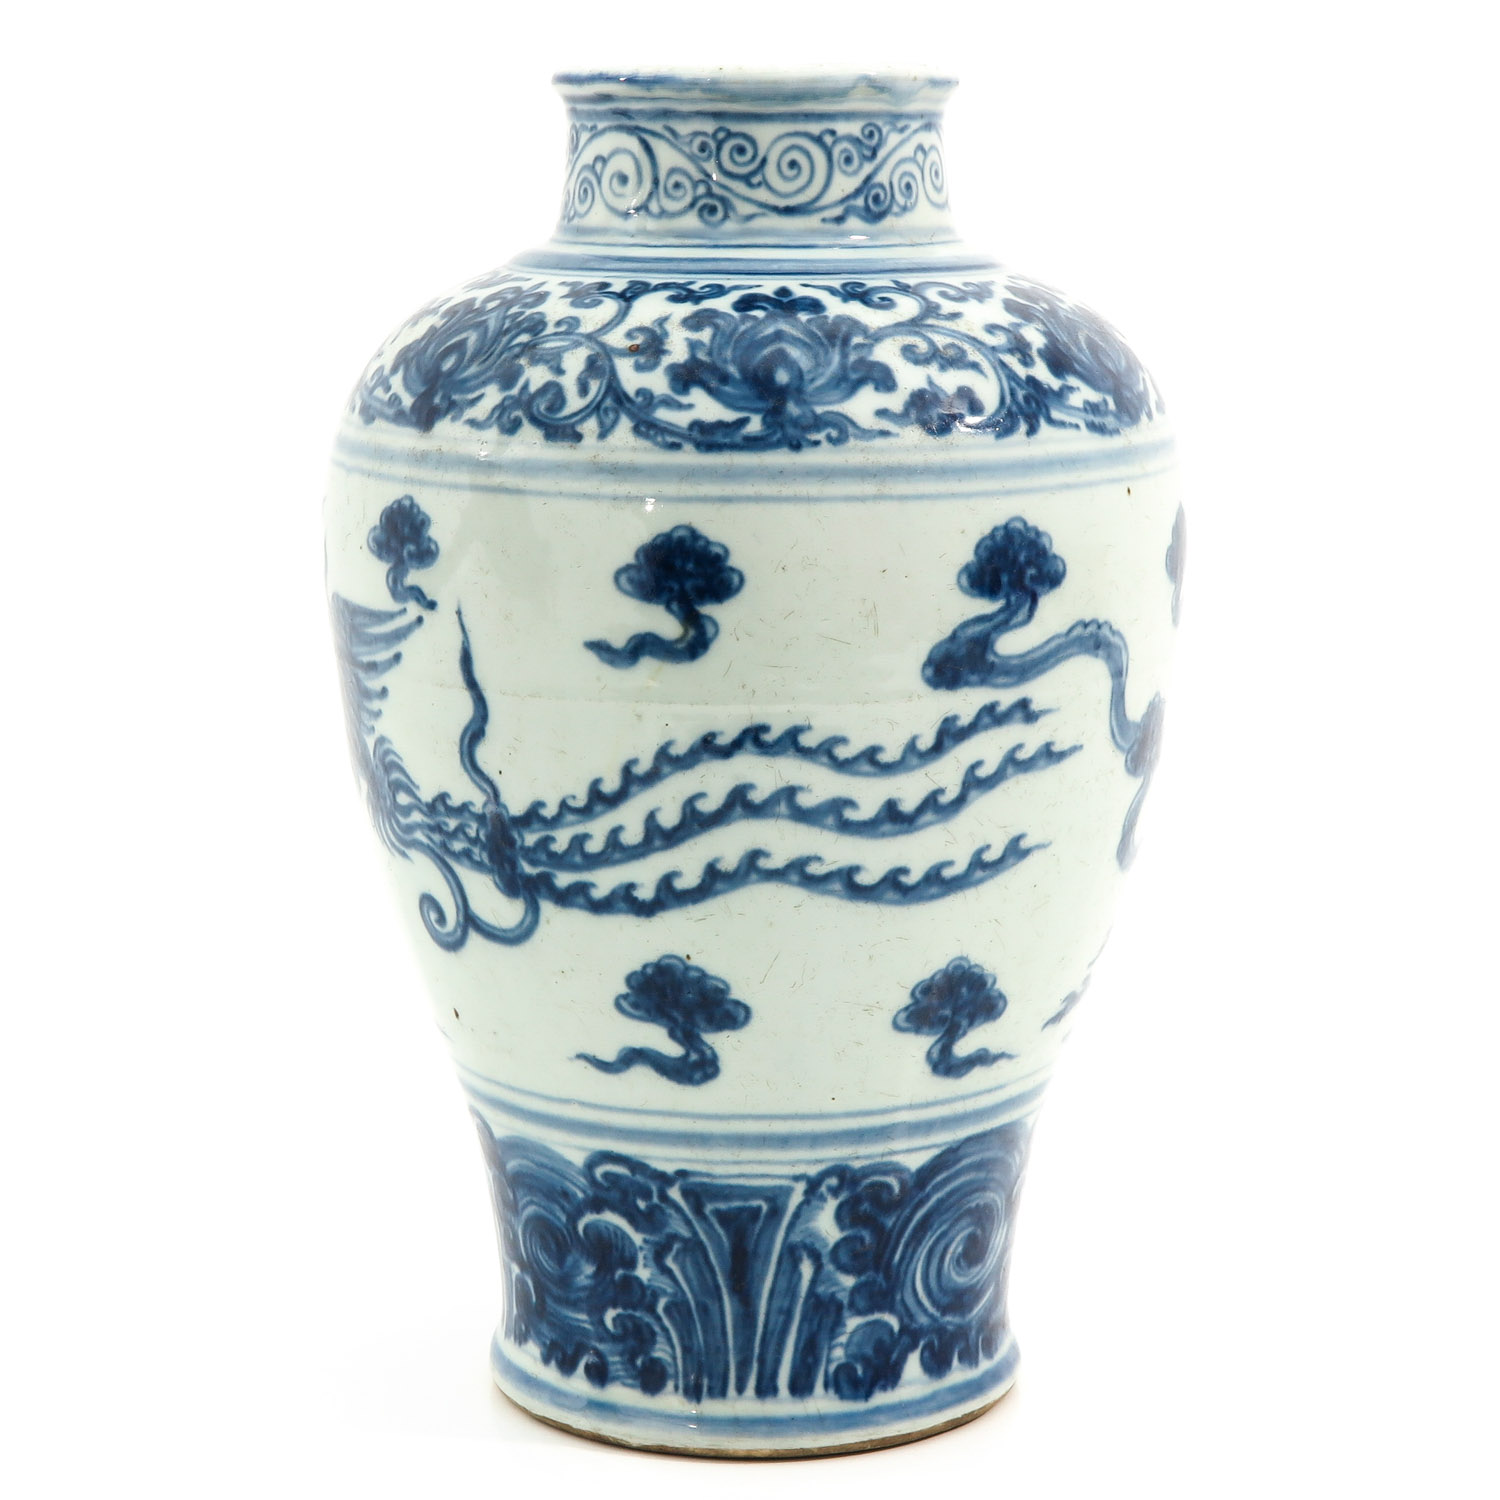 A Blue and White Vase - Image 2 of 9